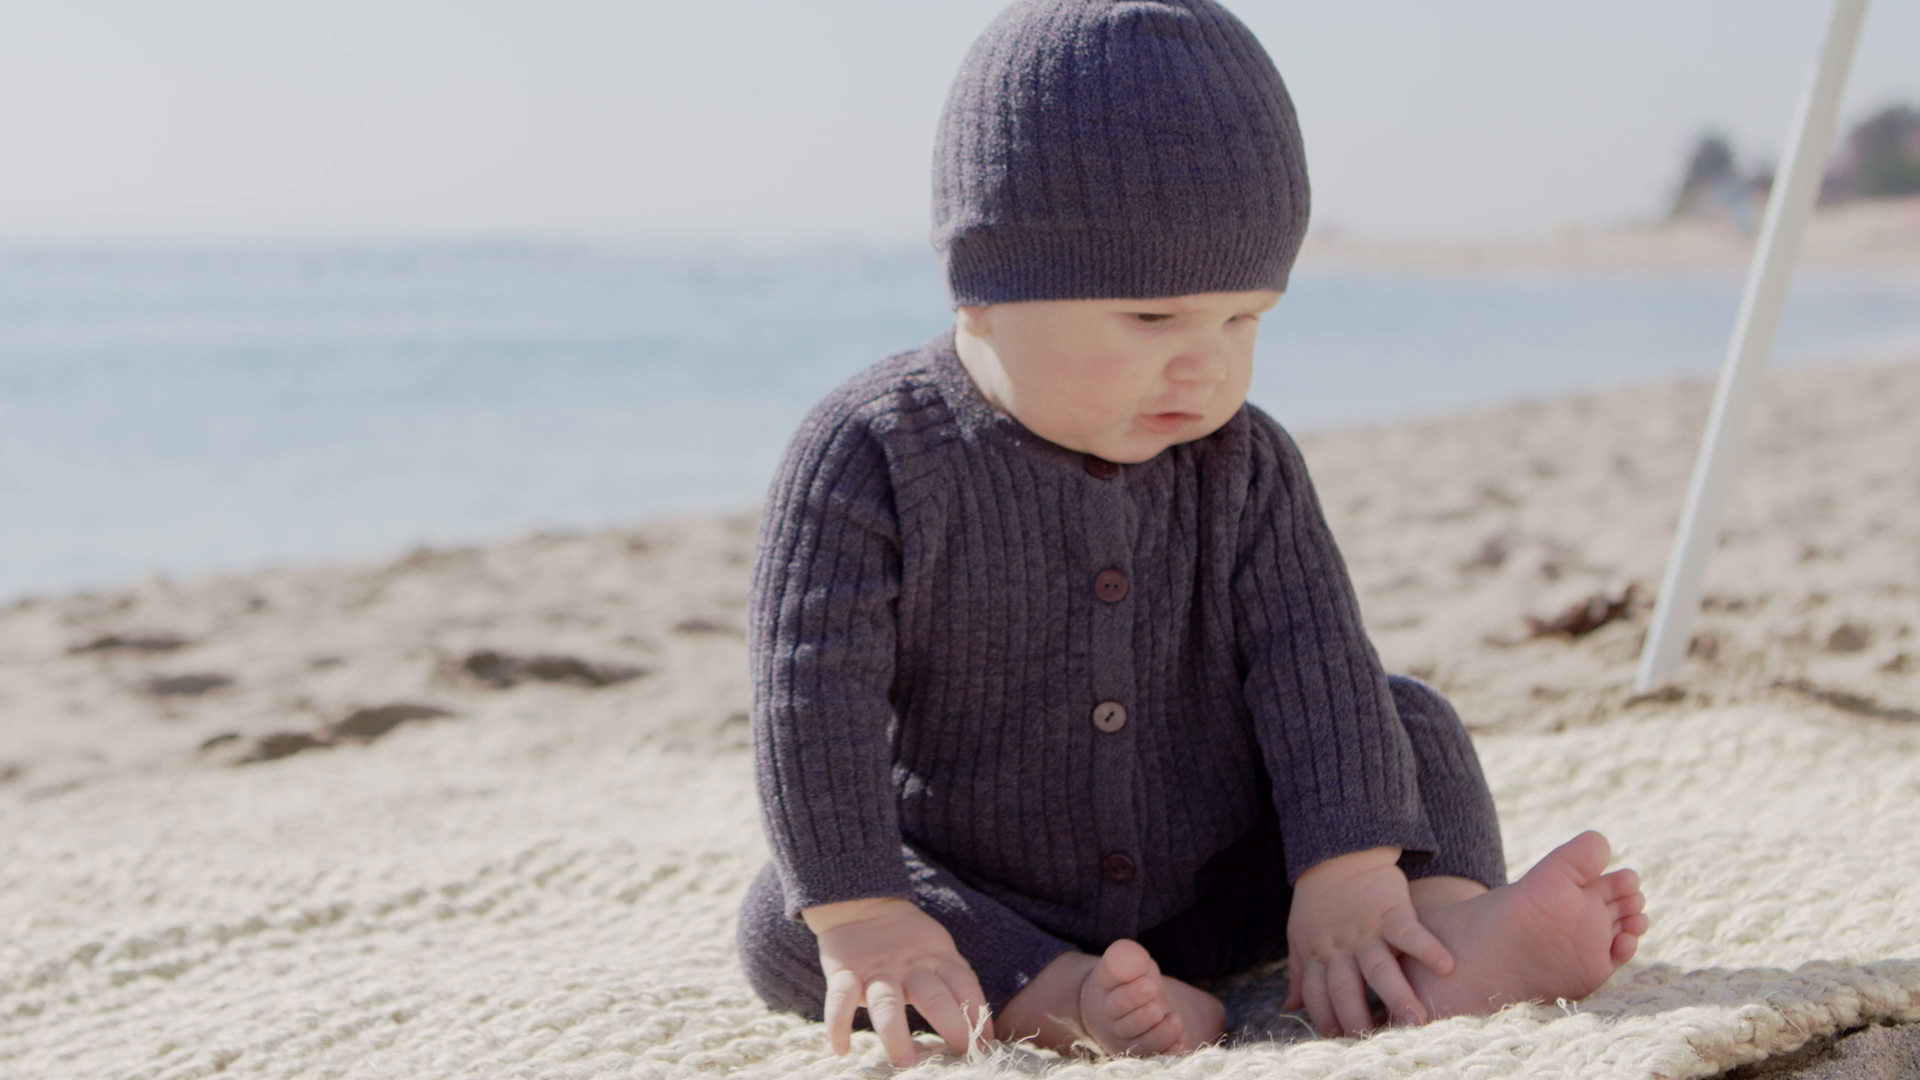 Watch the CCUL Infant Ribbed Cardi video